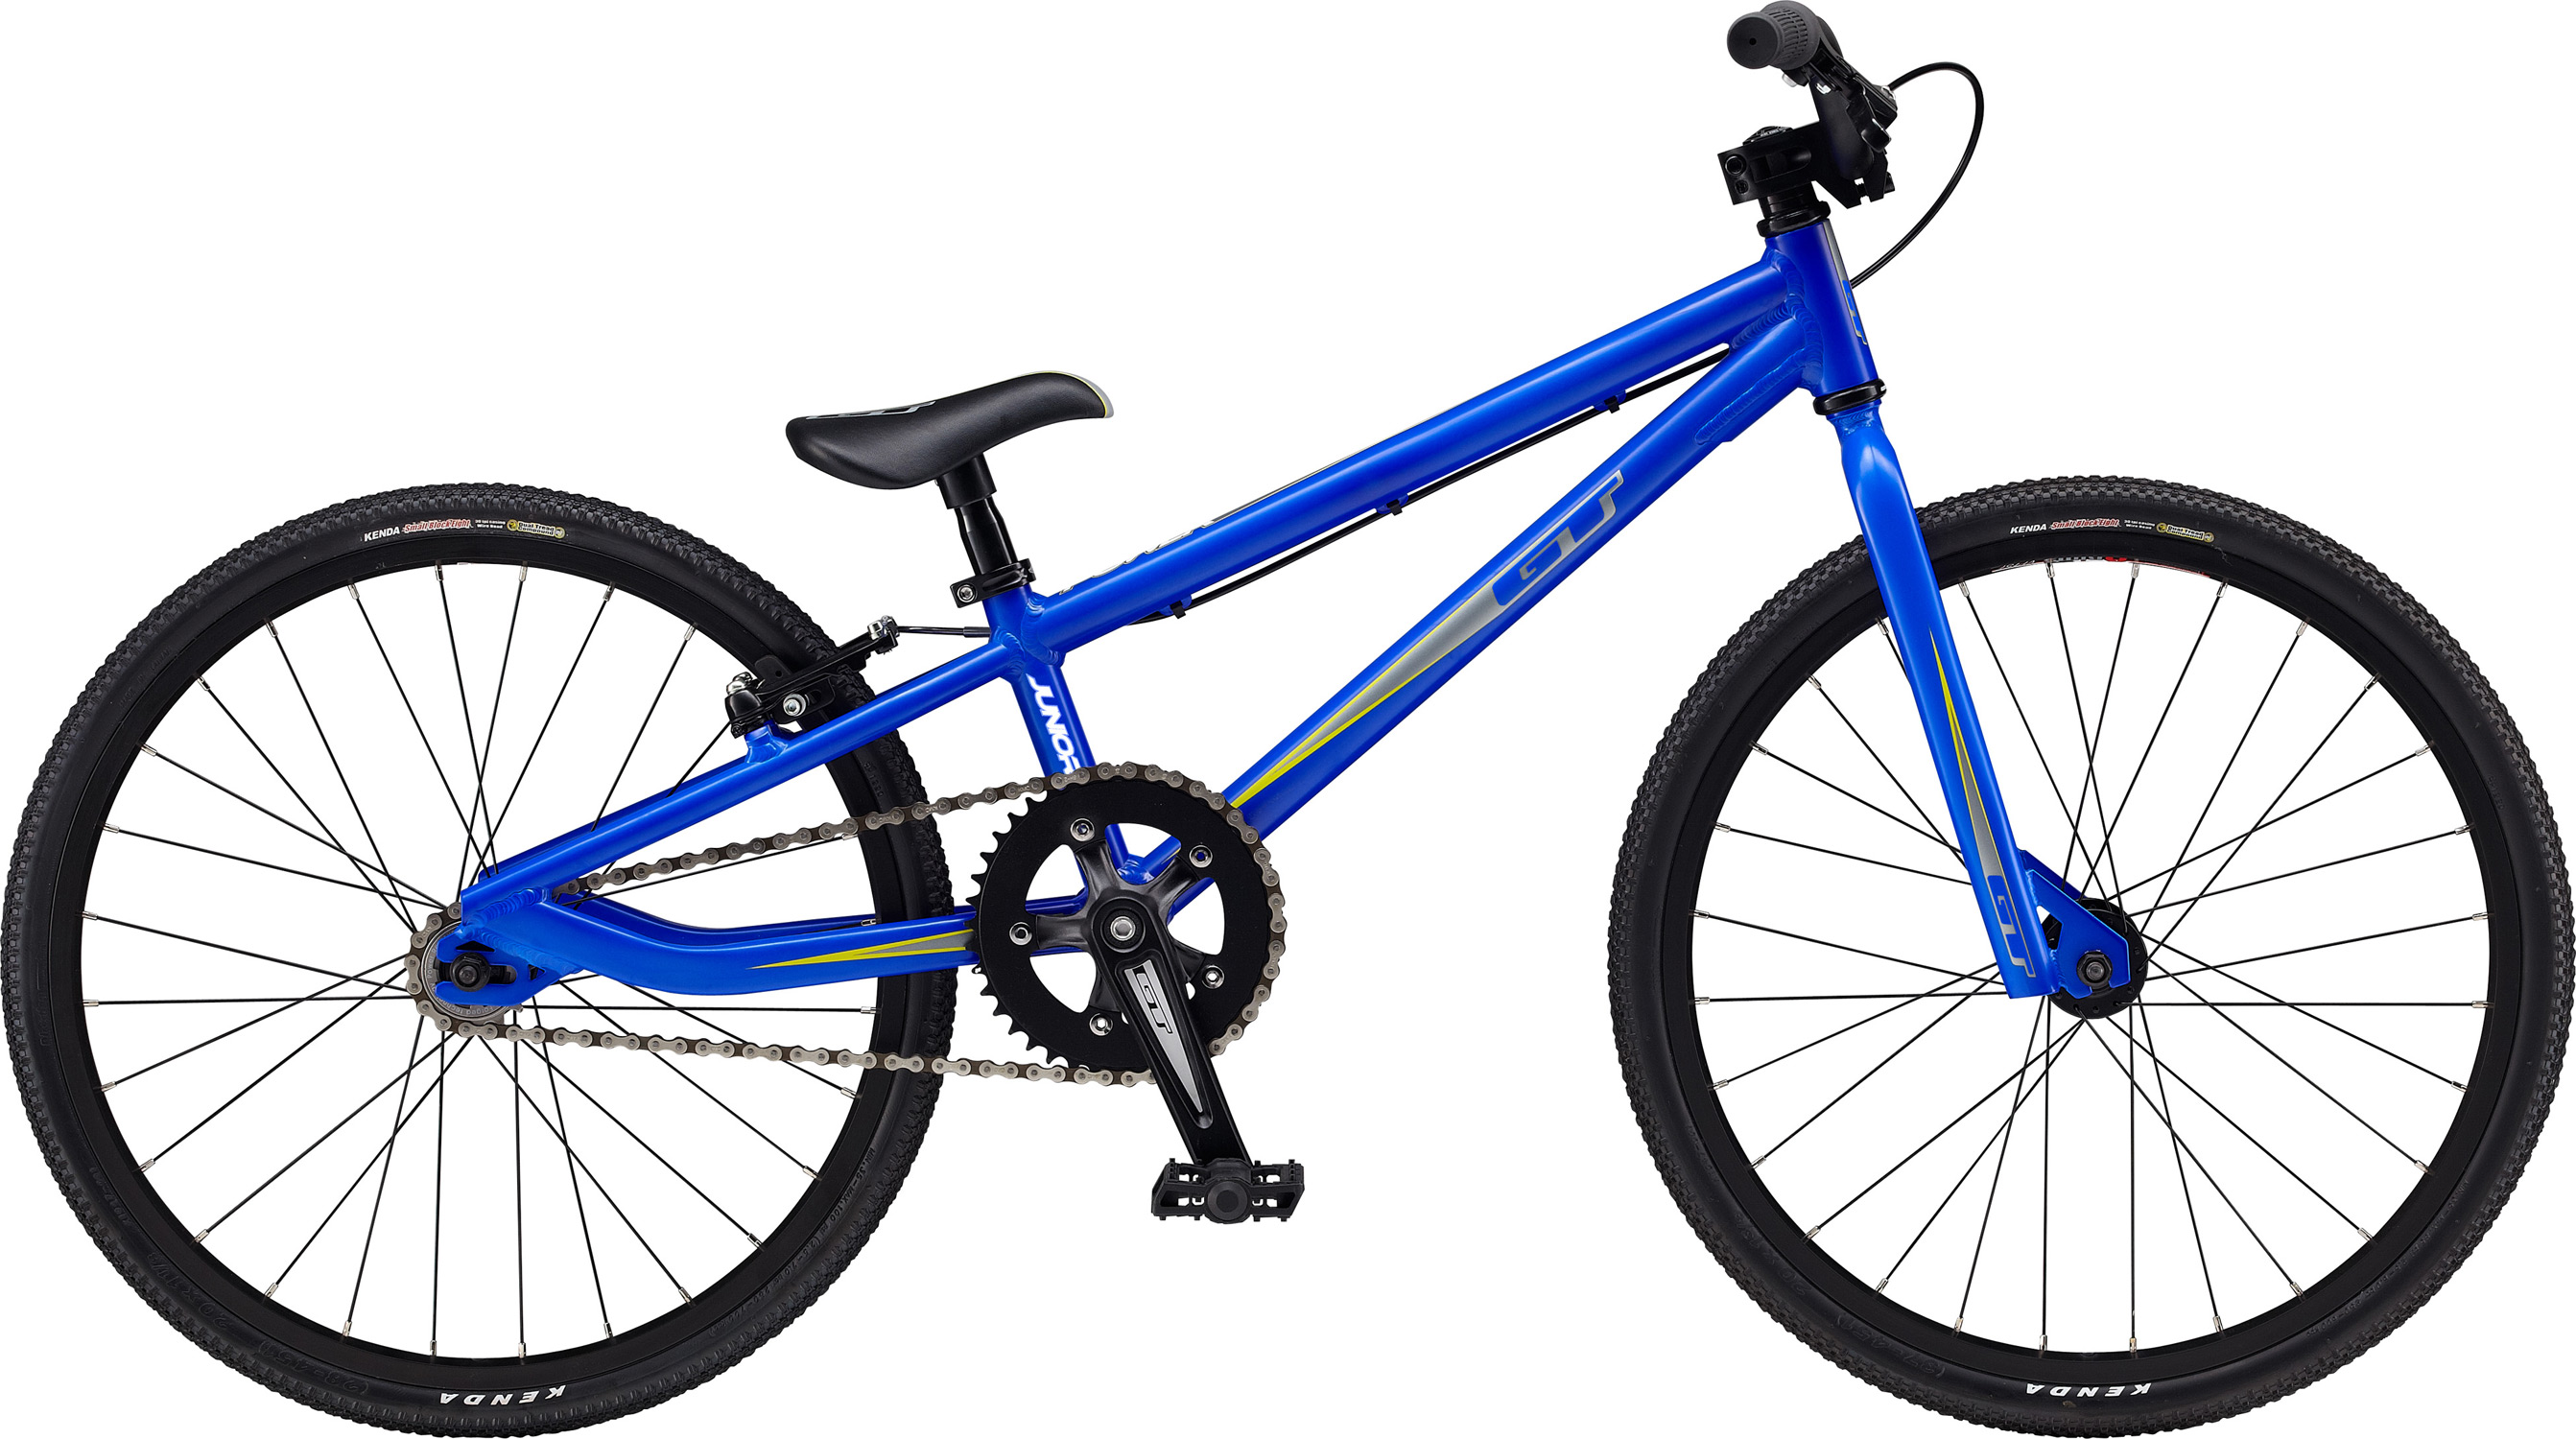 "BMX Key Features of the GT Power Series Jr BMX Bike: Frame: NEW Straight Gauge, 6061 Aluminum Front Suspension: GT, 100% Cro-Mo, 28.6 X 22.2 Oval, 3/8, 1-1/8"" Crankset: GT Al, 145mm AL 41T Wheels/Hubs: GT Mohawk 28H Hole Brakes: Tektro BX1V - $299.95"